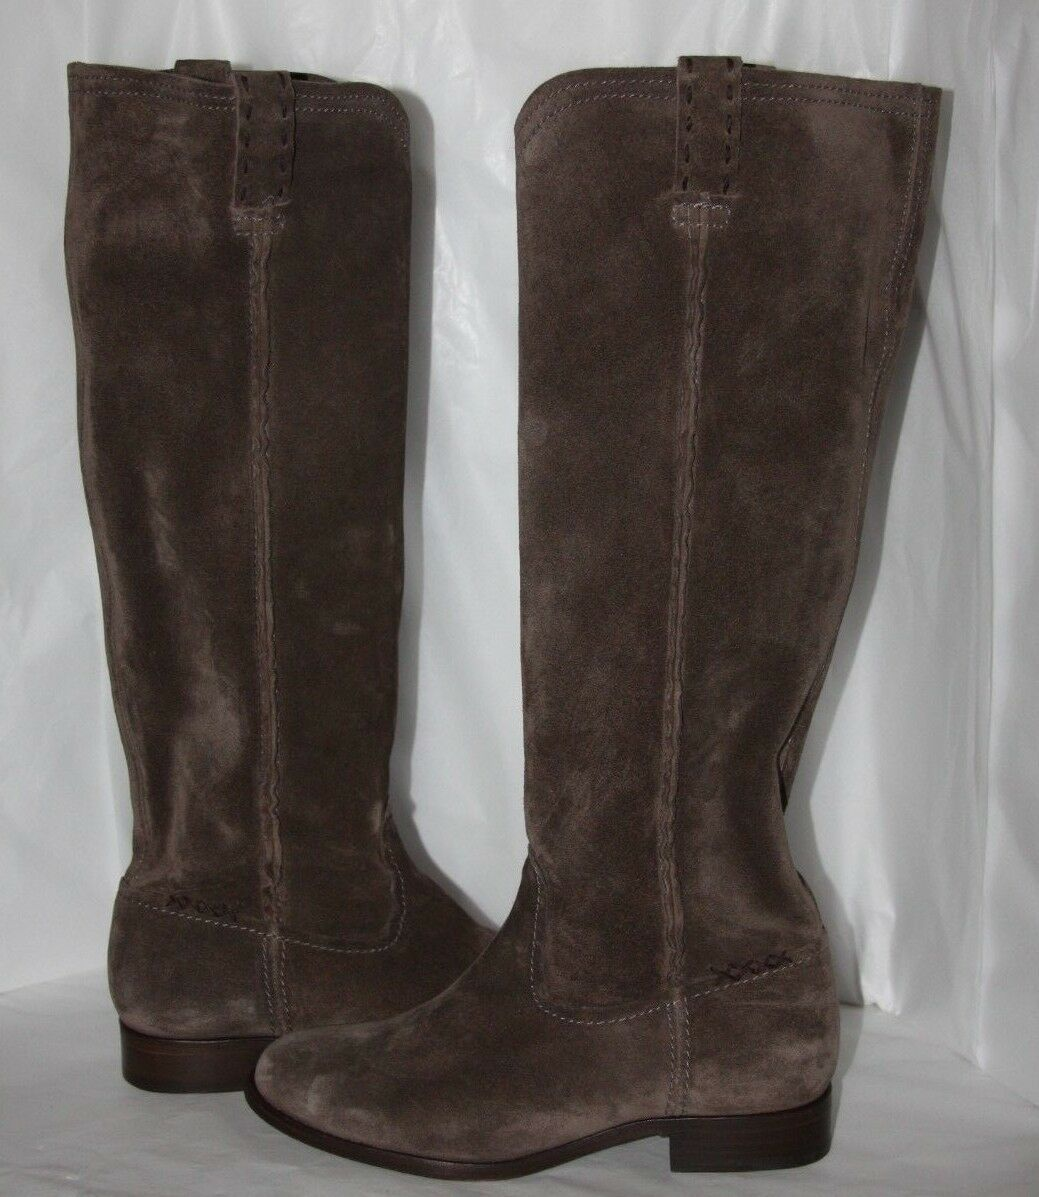 Frye Cara Tall Elephant size oiled suede Stiefel women's size Elephant 6.5 b  Retail 378.00 ab594d